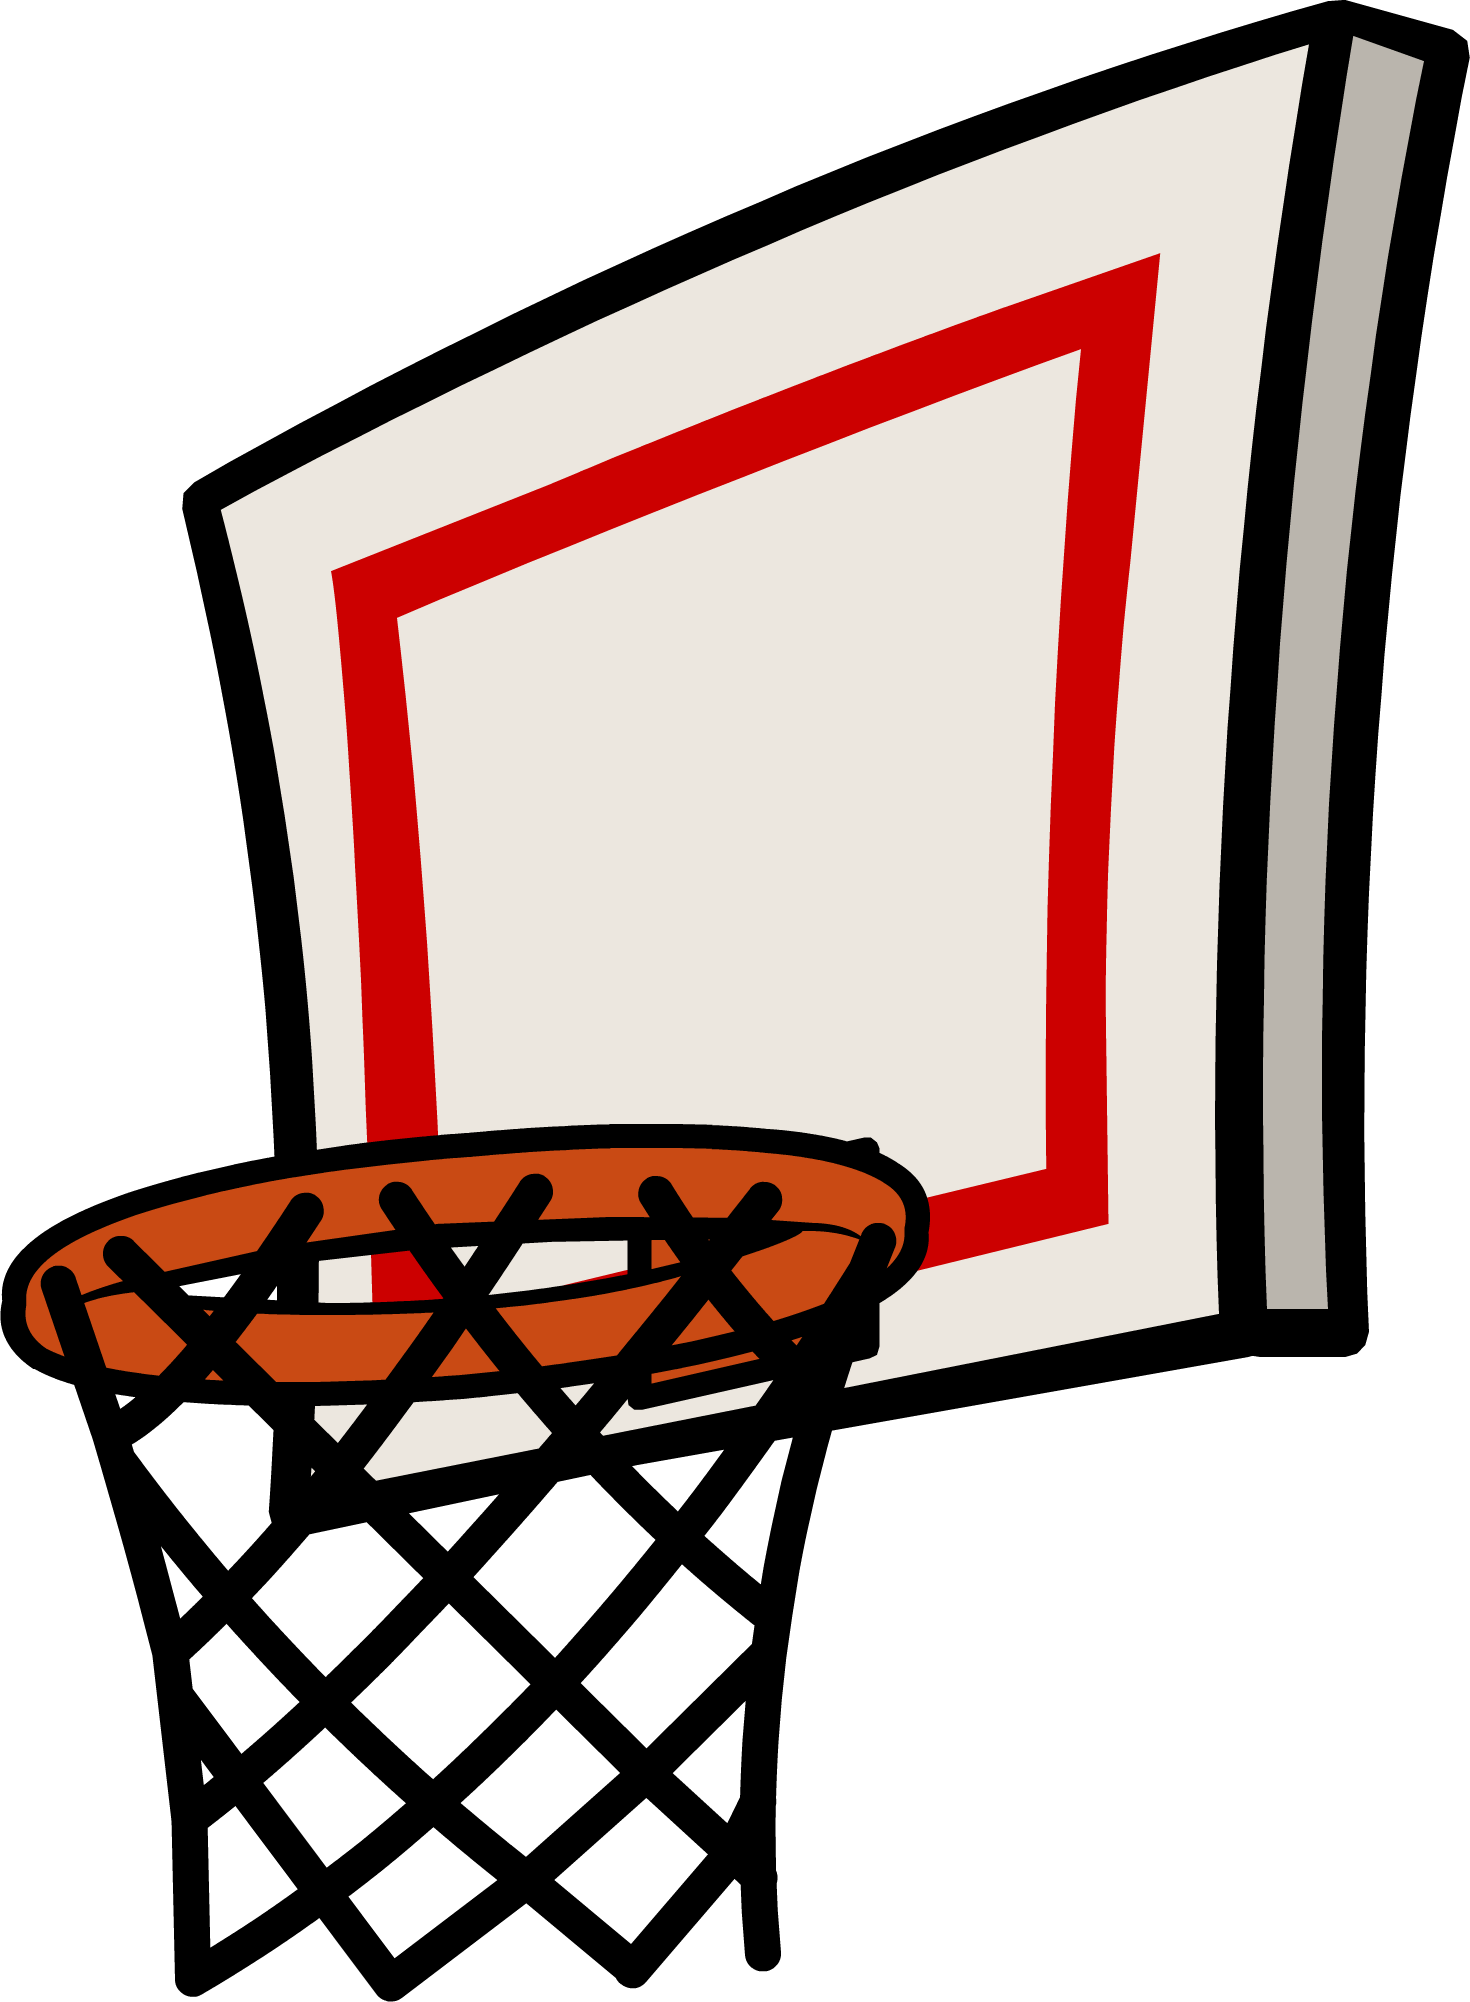 Clip net basketball. Image sprite png club